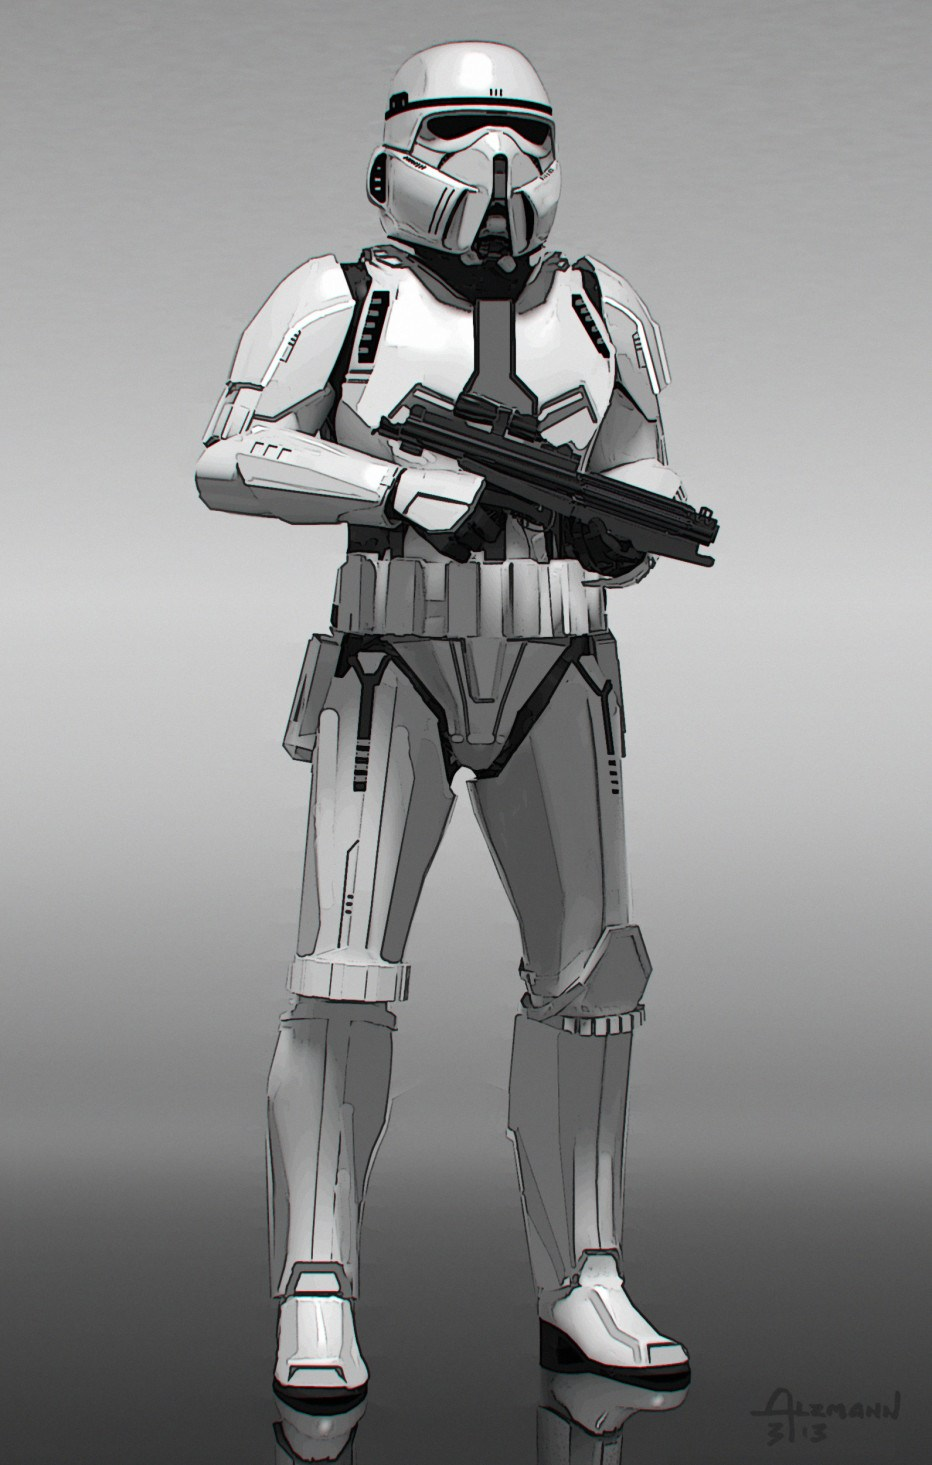 awesome-early-concept-and-poster-art-for-star-wars-the-force-awakens9.jpg